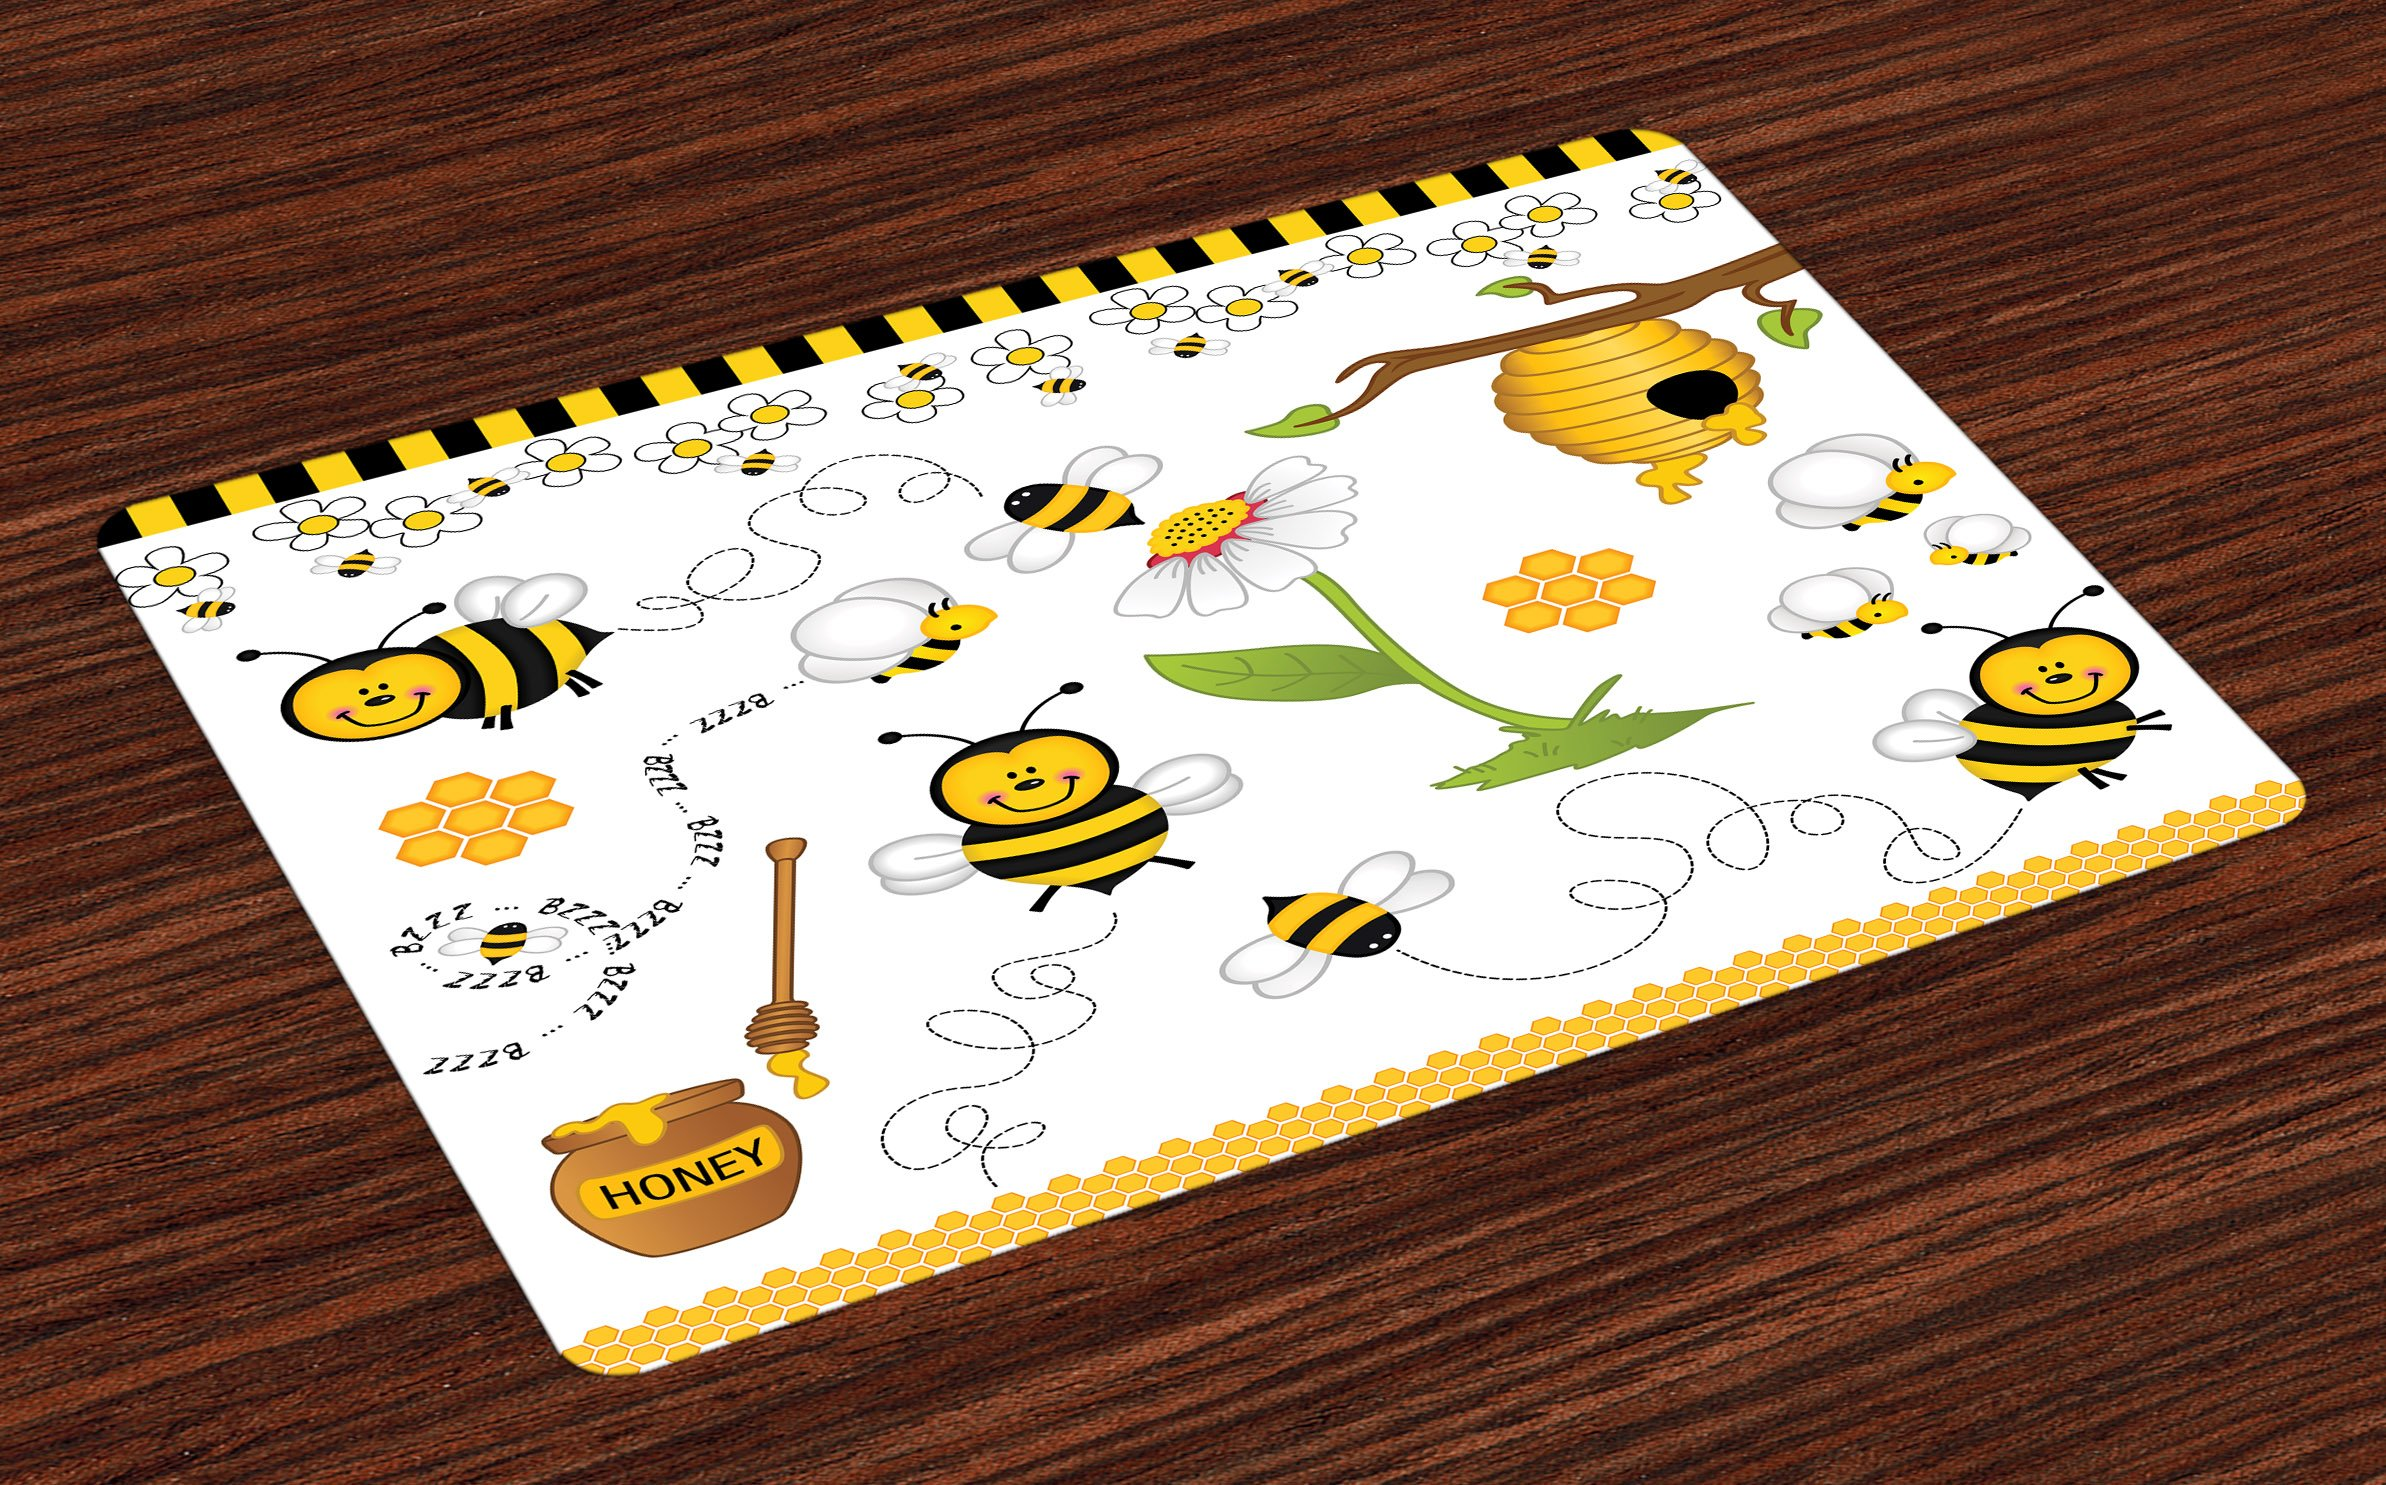 Ambesonne Collage Place Mats Set of 4, Flying Bees Daisy Honey Chamomile Flowers Pollen Springtime Animal Print, Washable Fabric Placemats for Dining Room Kitchen Table Decor, Yellow White Black